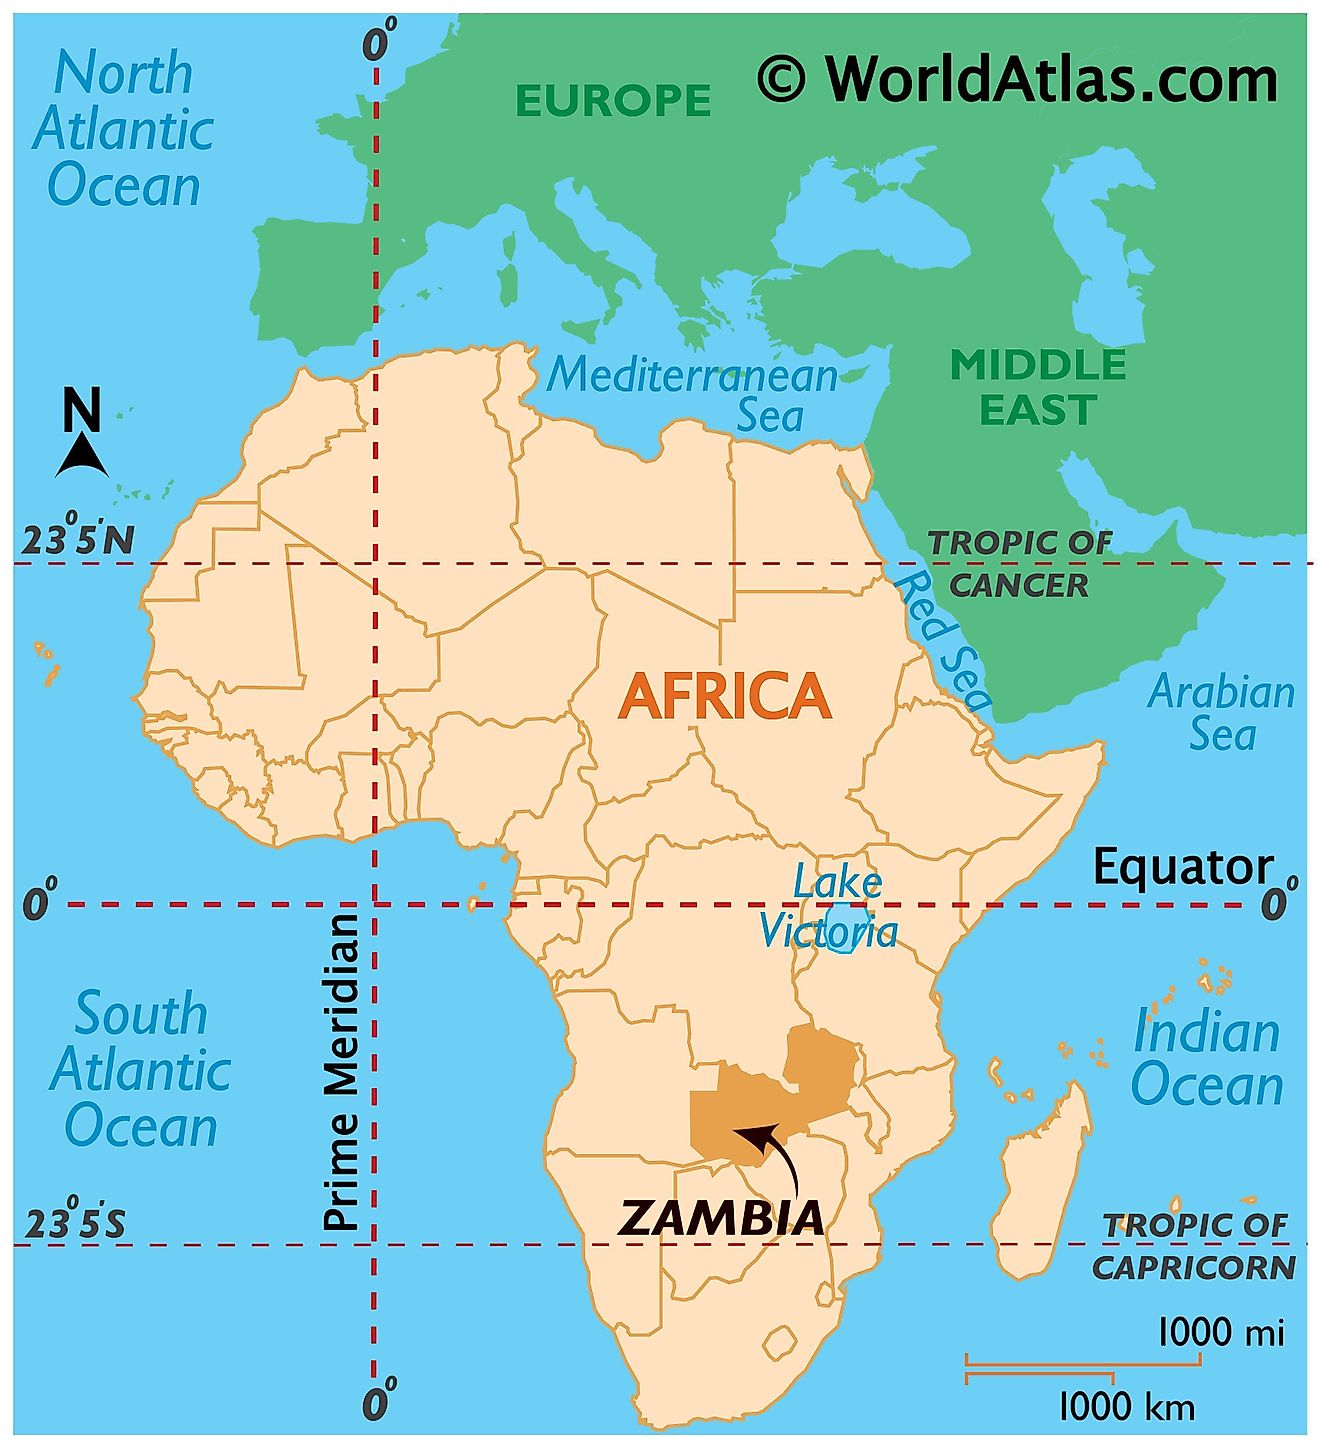 Map showing location of Zambia in the world.